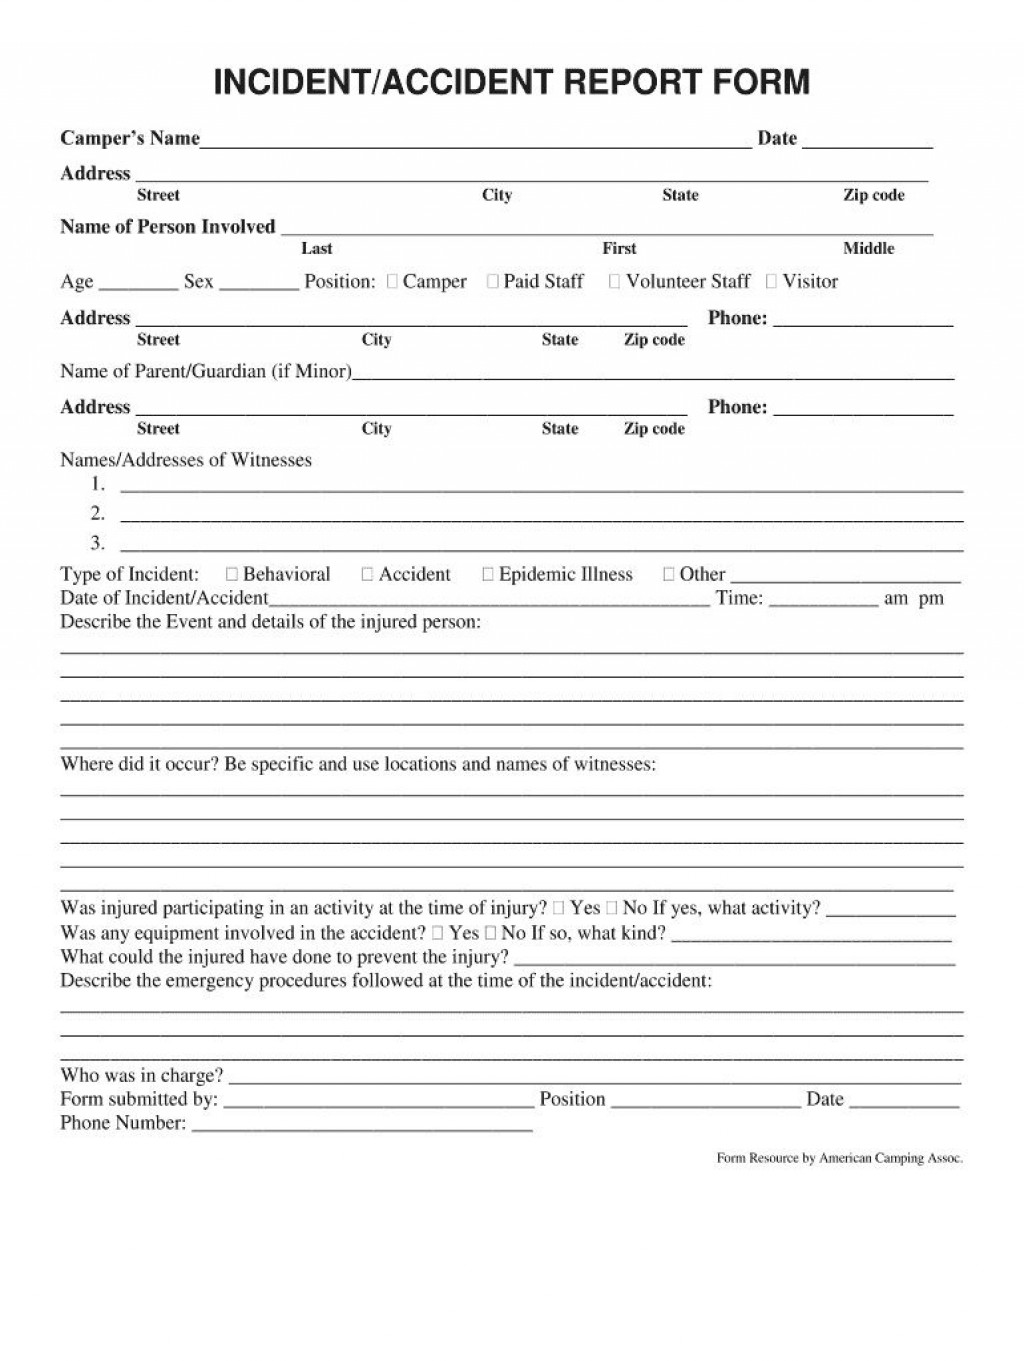 007 Outstanding Accident Report Form Template Photo  Free South Africa PdfLarge